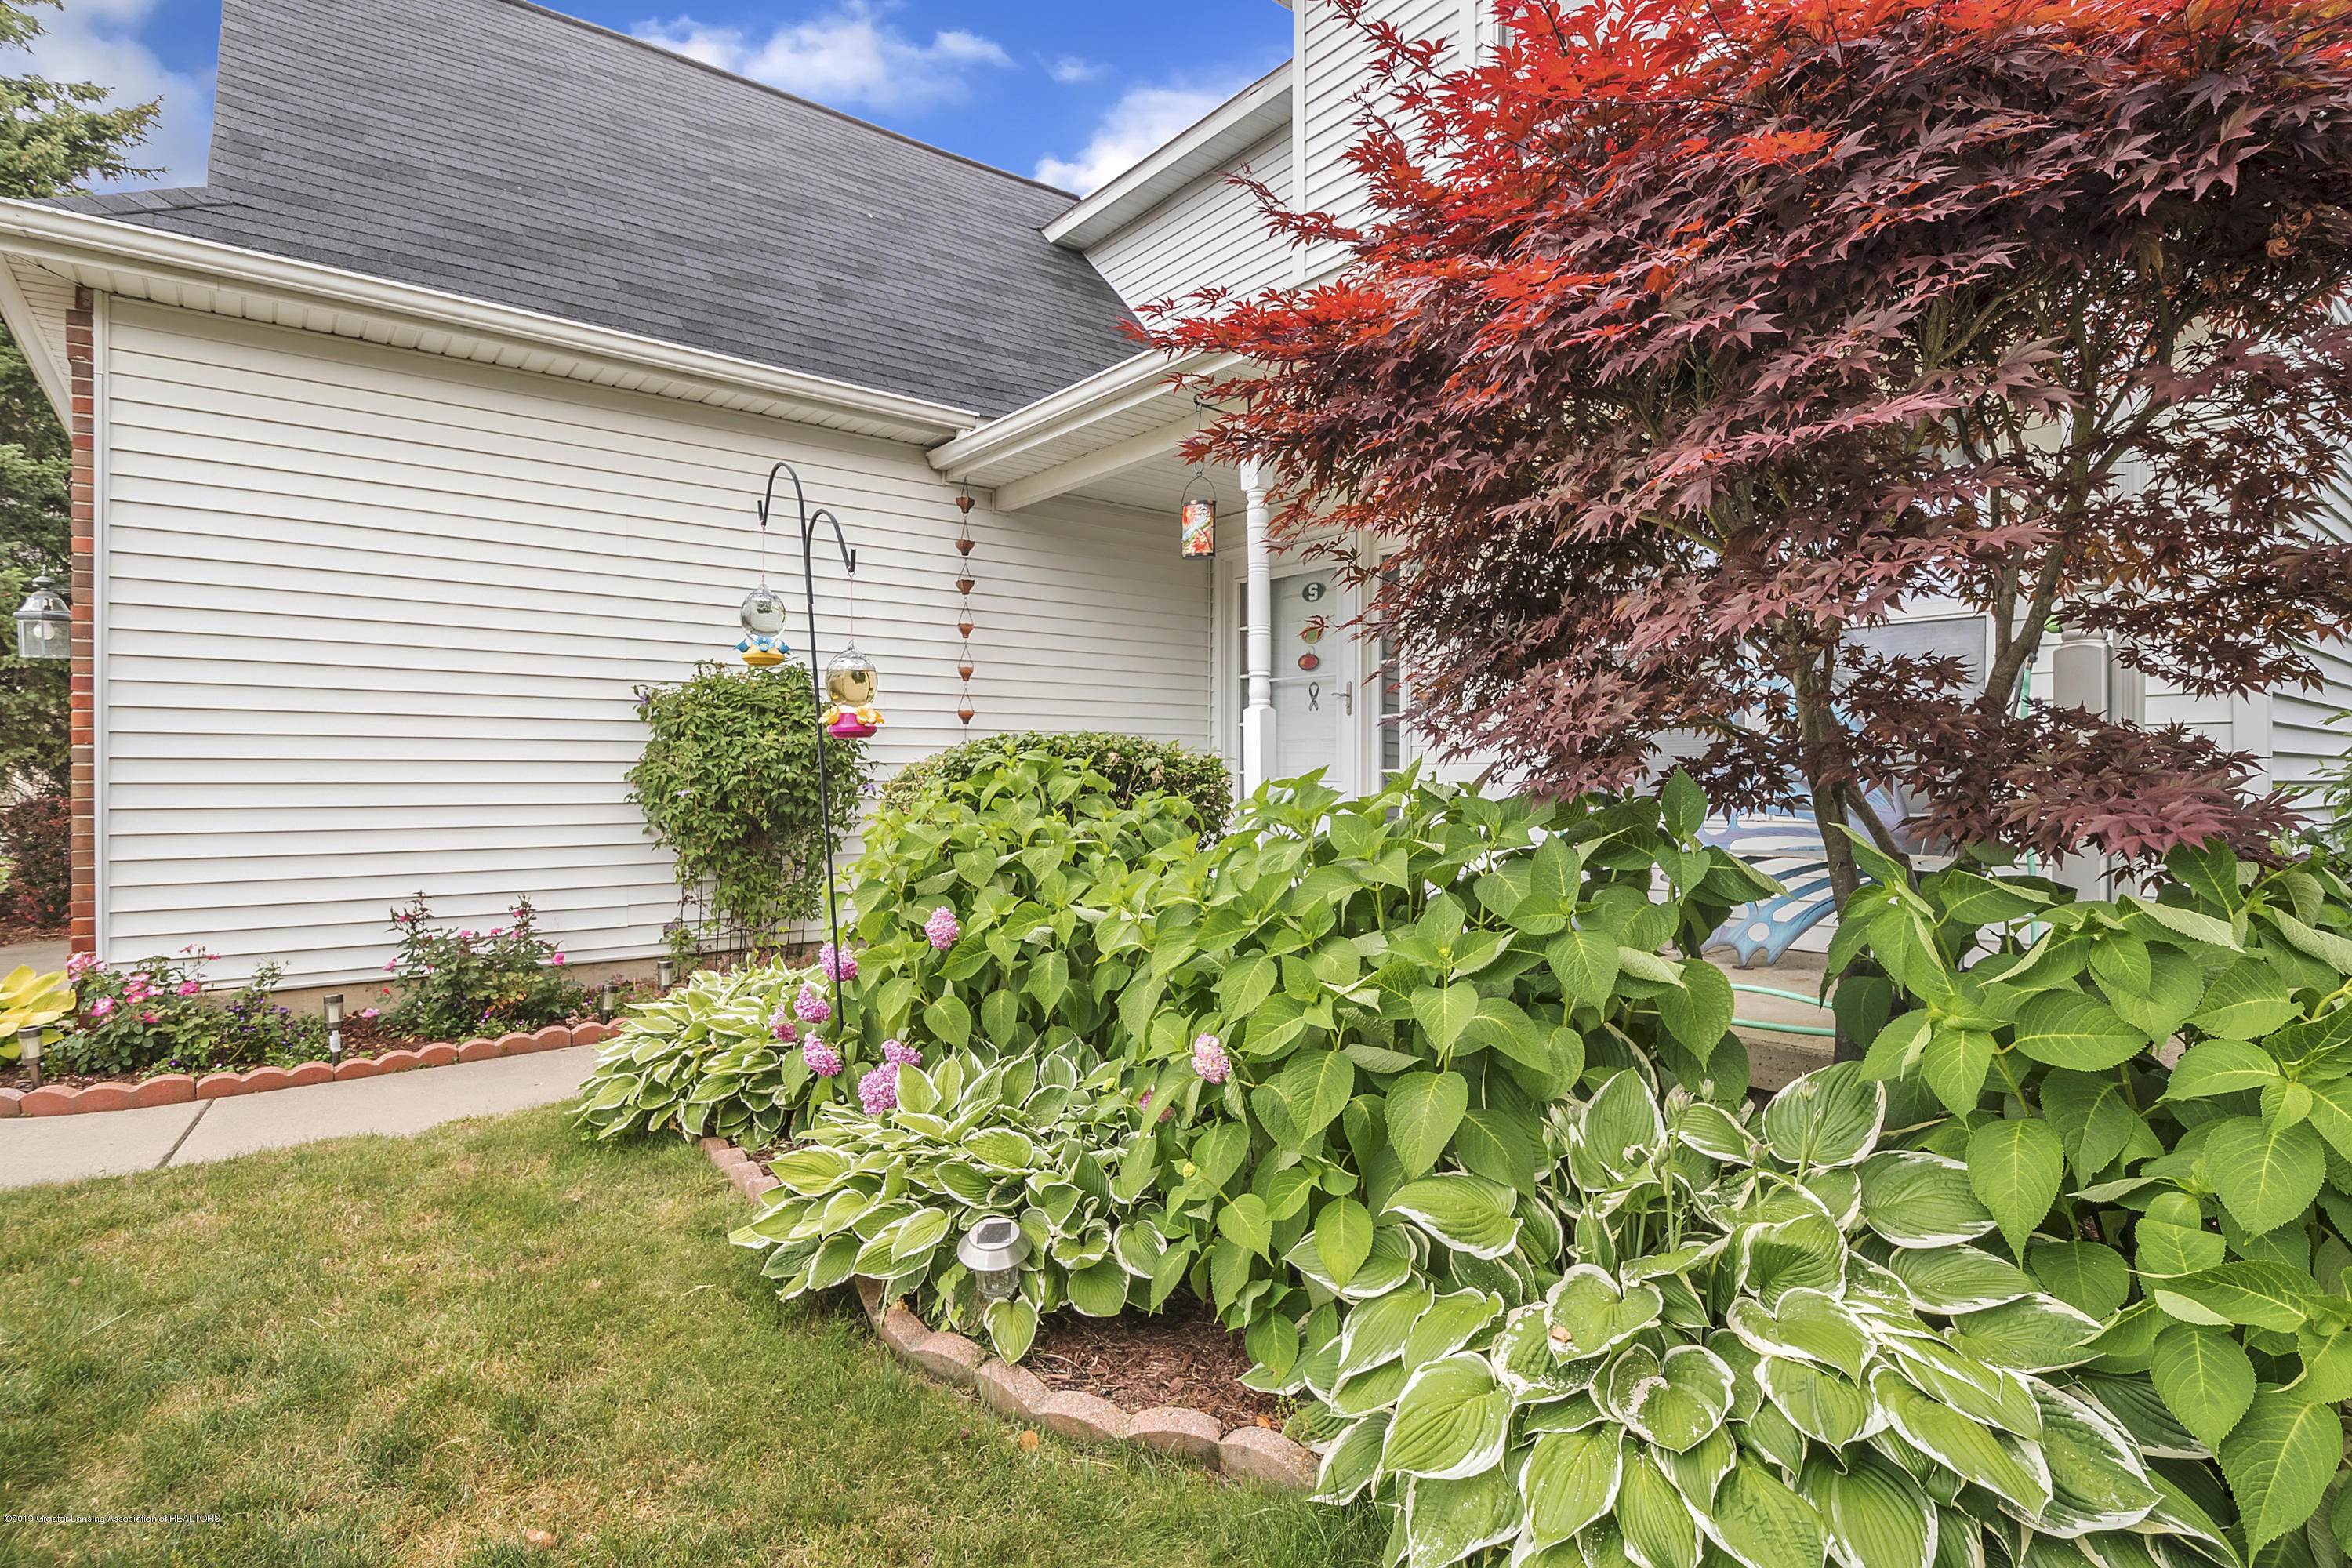 1349 Turtlecreek Cir - 1349-Turtlecreek-Cir-East-Lansing-window - 5